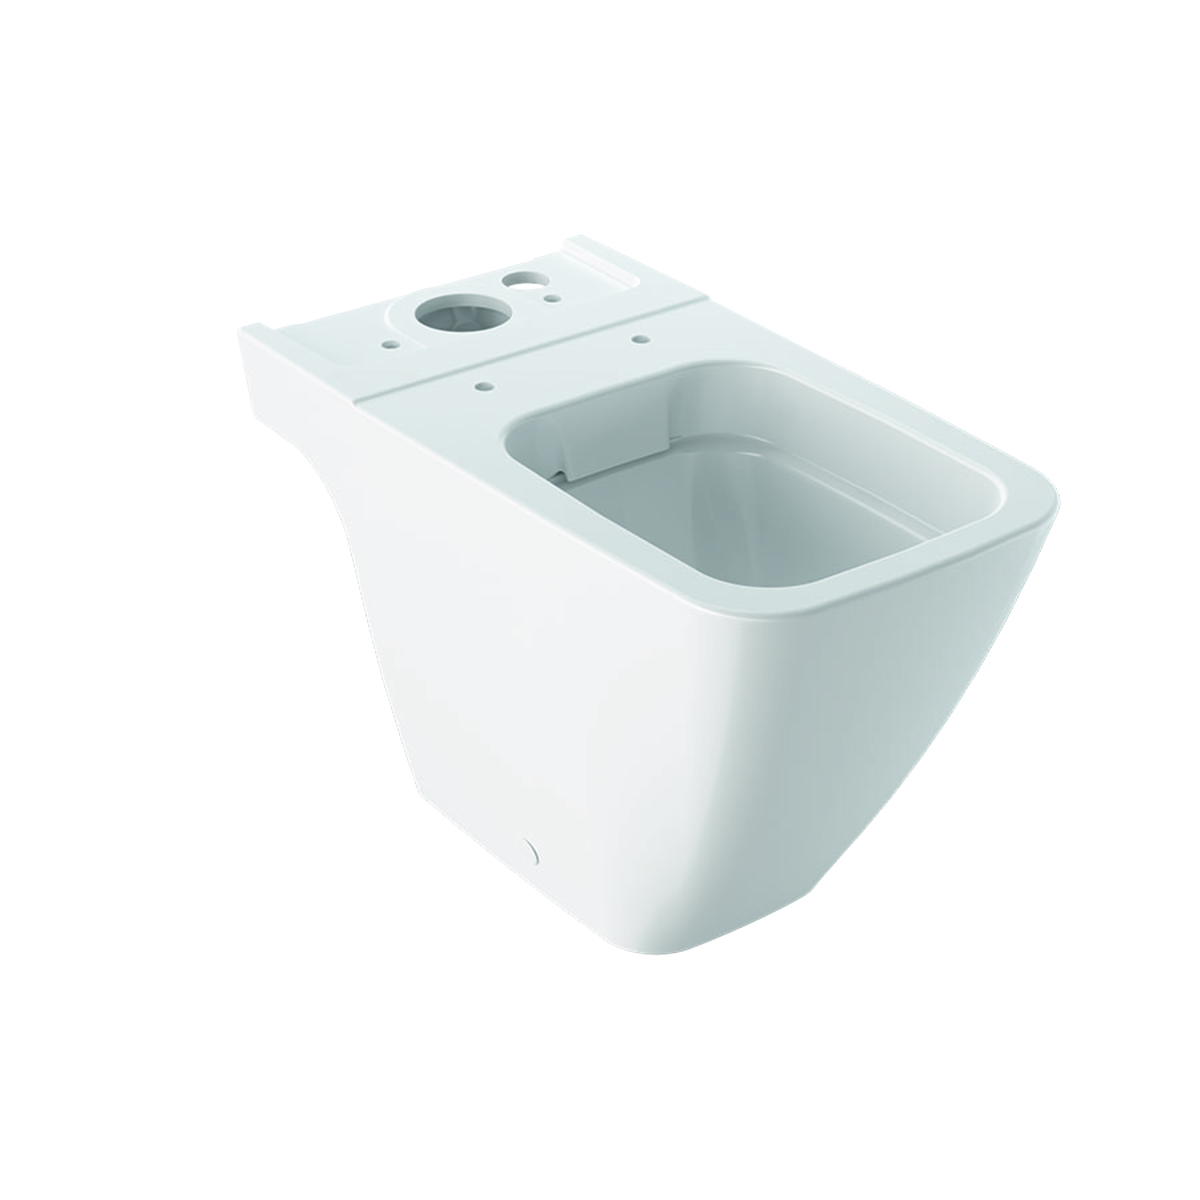 Geberit iCon Square duobloktoilet rimfree KeraTect, wit